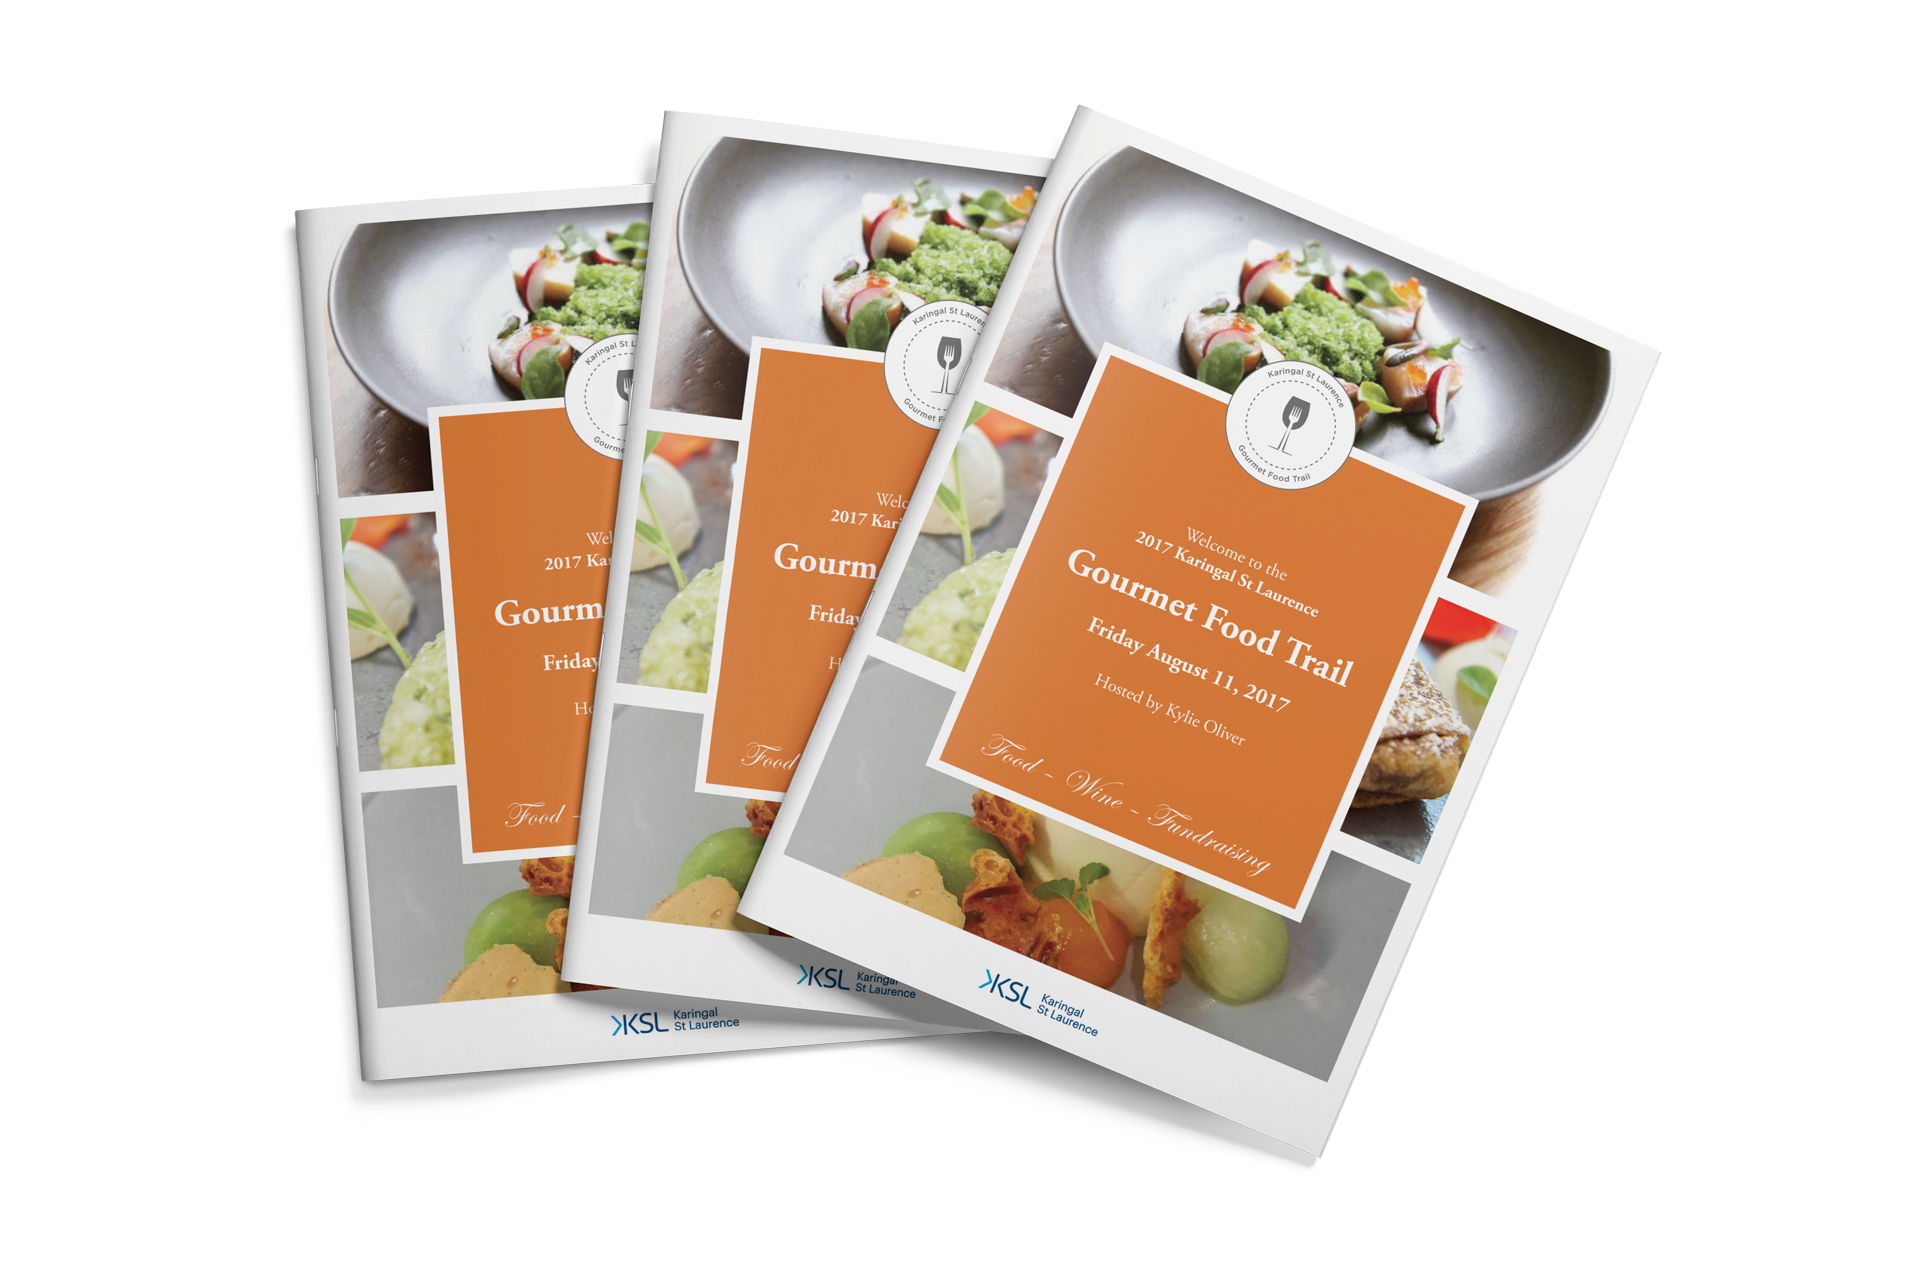 Gourmet Food & Wine Trail 2017 event booklets